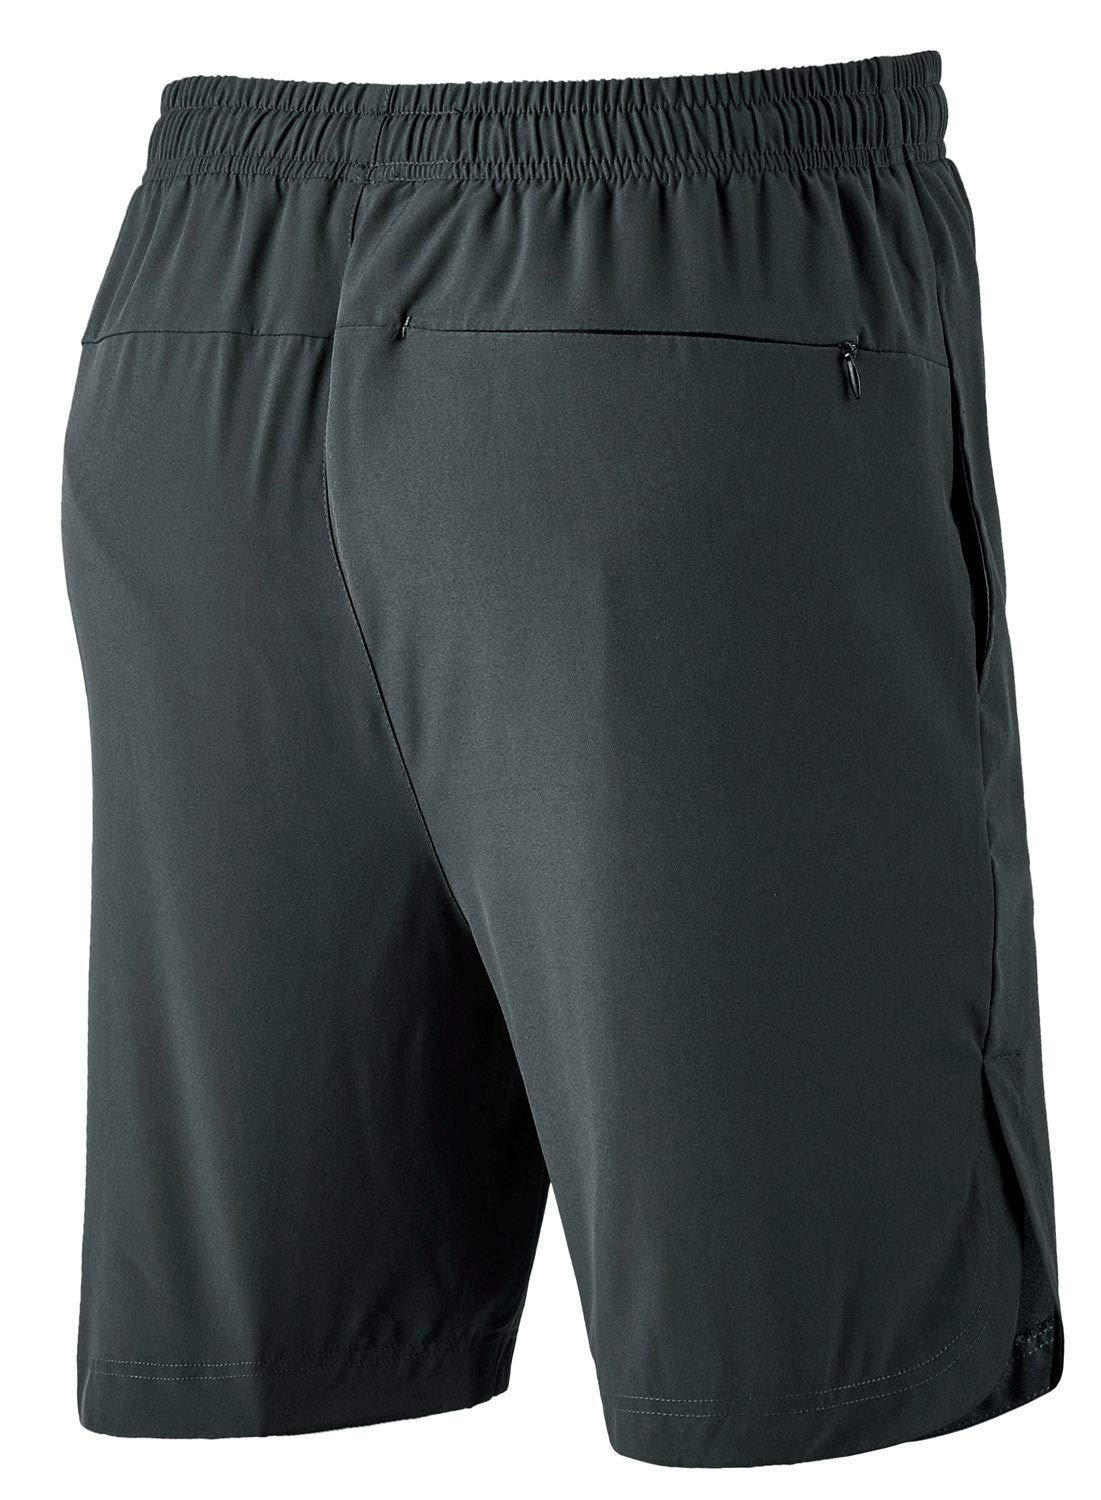 TBMPOY Mens 7 Quick Dry Active Running Workout Shorts with Mesh Liner Zip Pockets